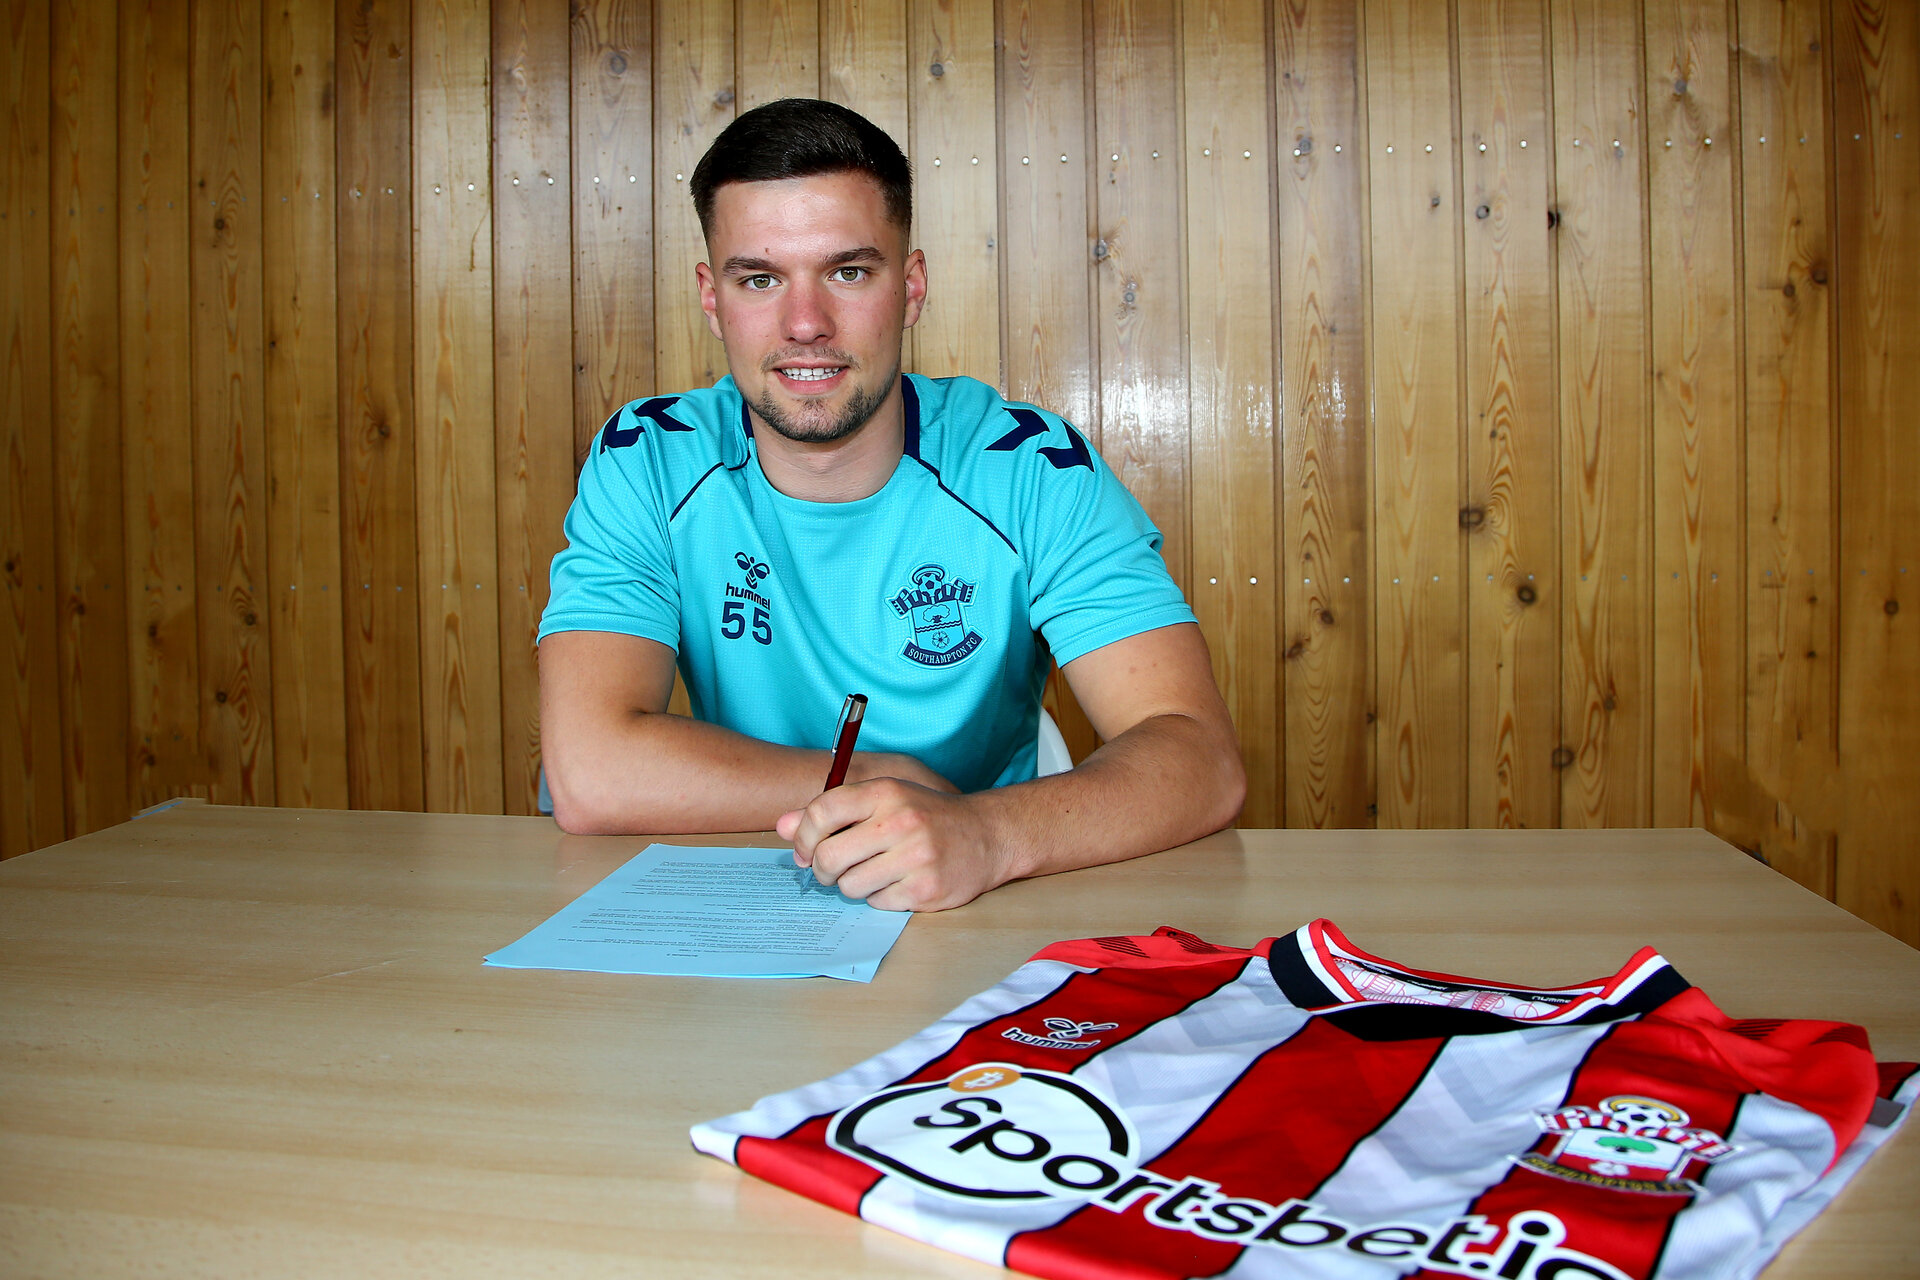 SOUTHAMPTON, ENGLAND - July 01: Jack Turner photographed signing as pro deal with Southampton FC at Staplewood training ground on July 01, 2021 in Southampton, England. (Photo by Isabelle Field/Southampton FC via Getty Images)